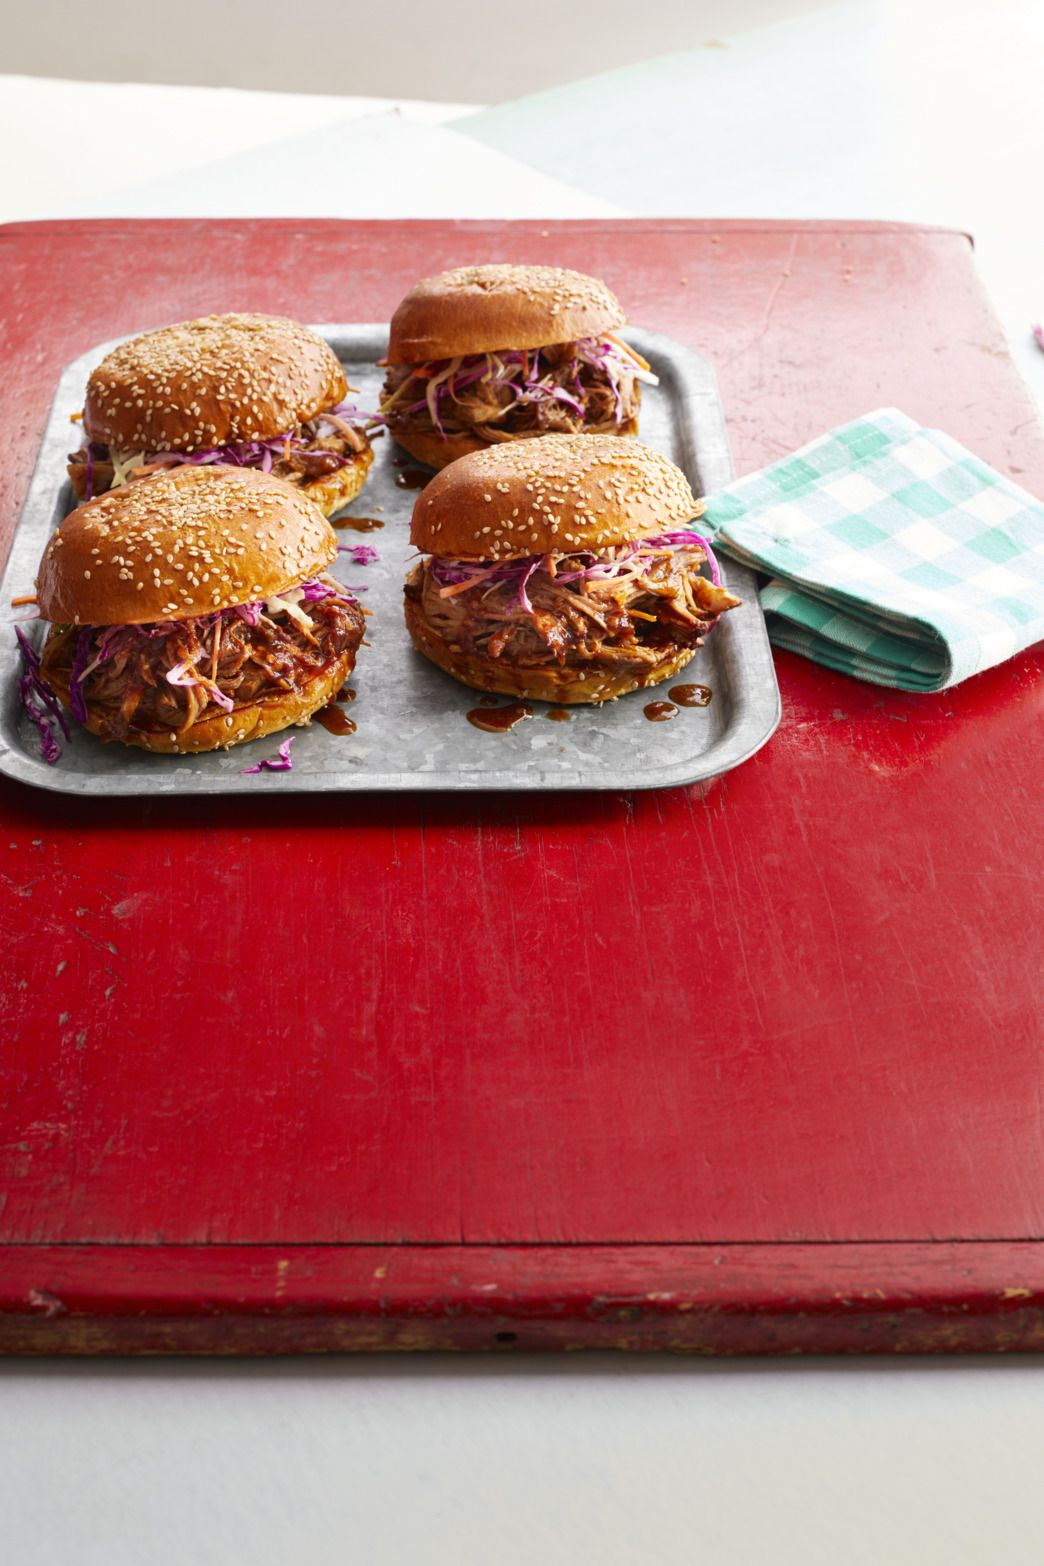 Best Spicy Dr Pepper Pulled Pork Sandwiches Recipe How To Make Spicy Dr Pepper Pulled Pork Sandwiches